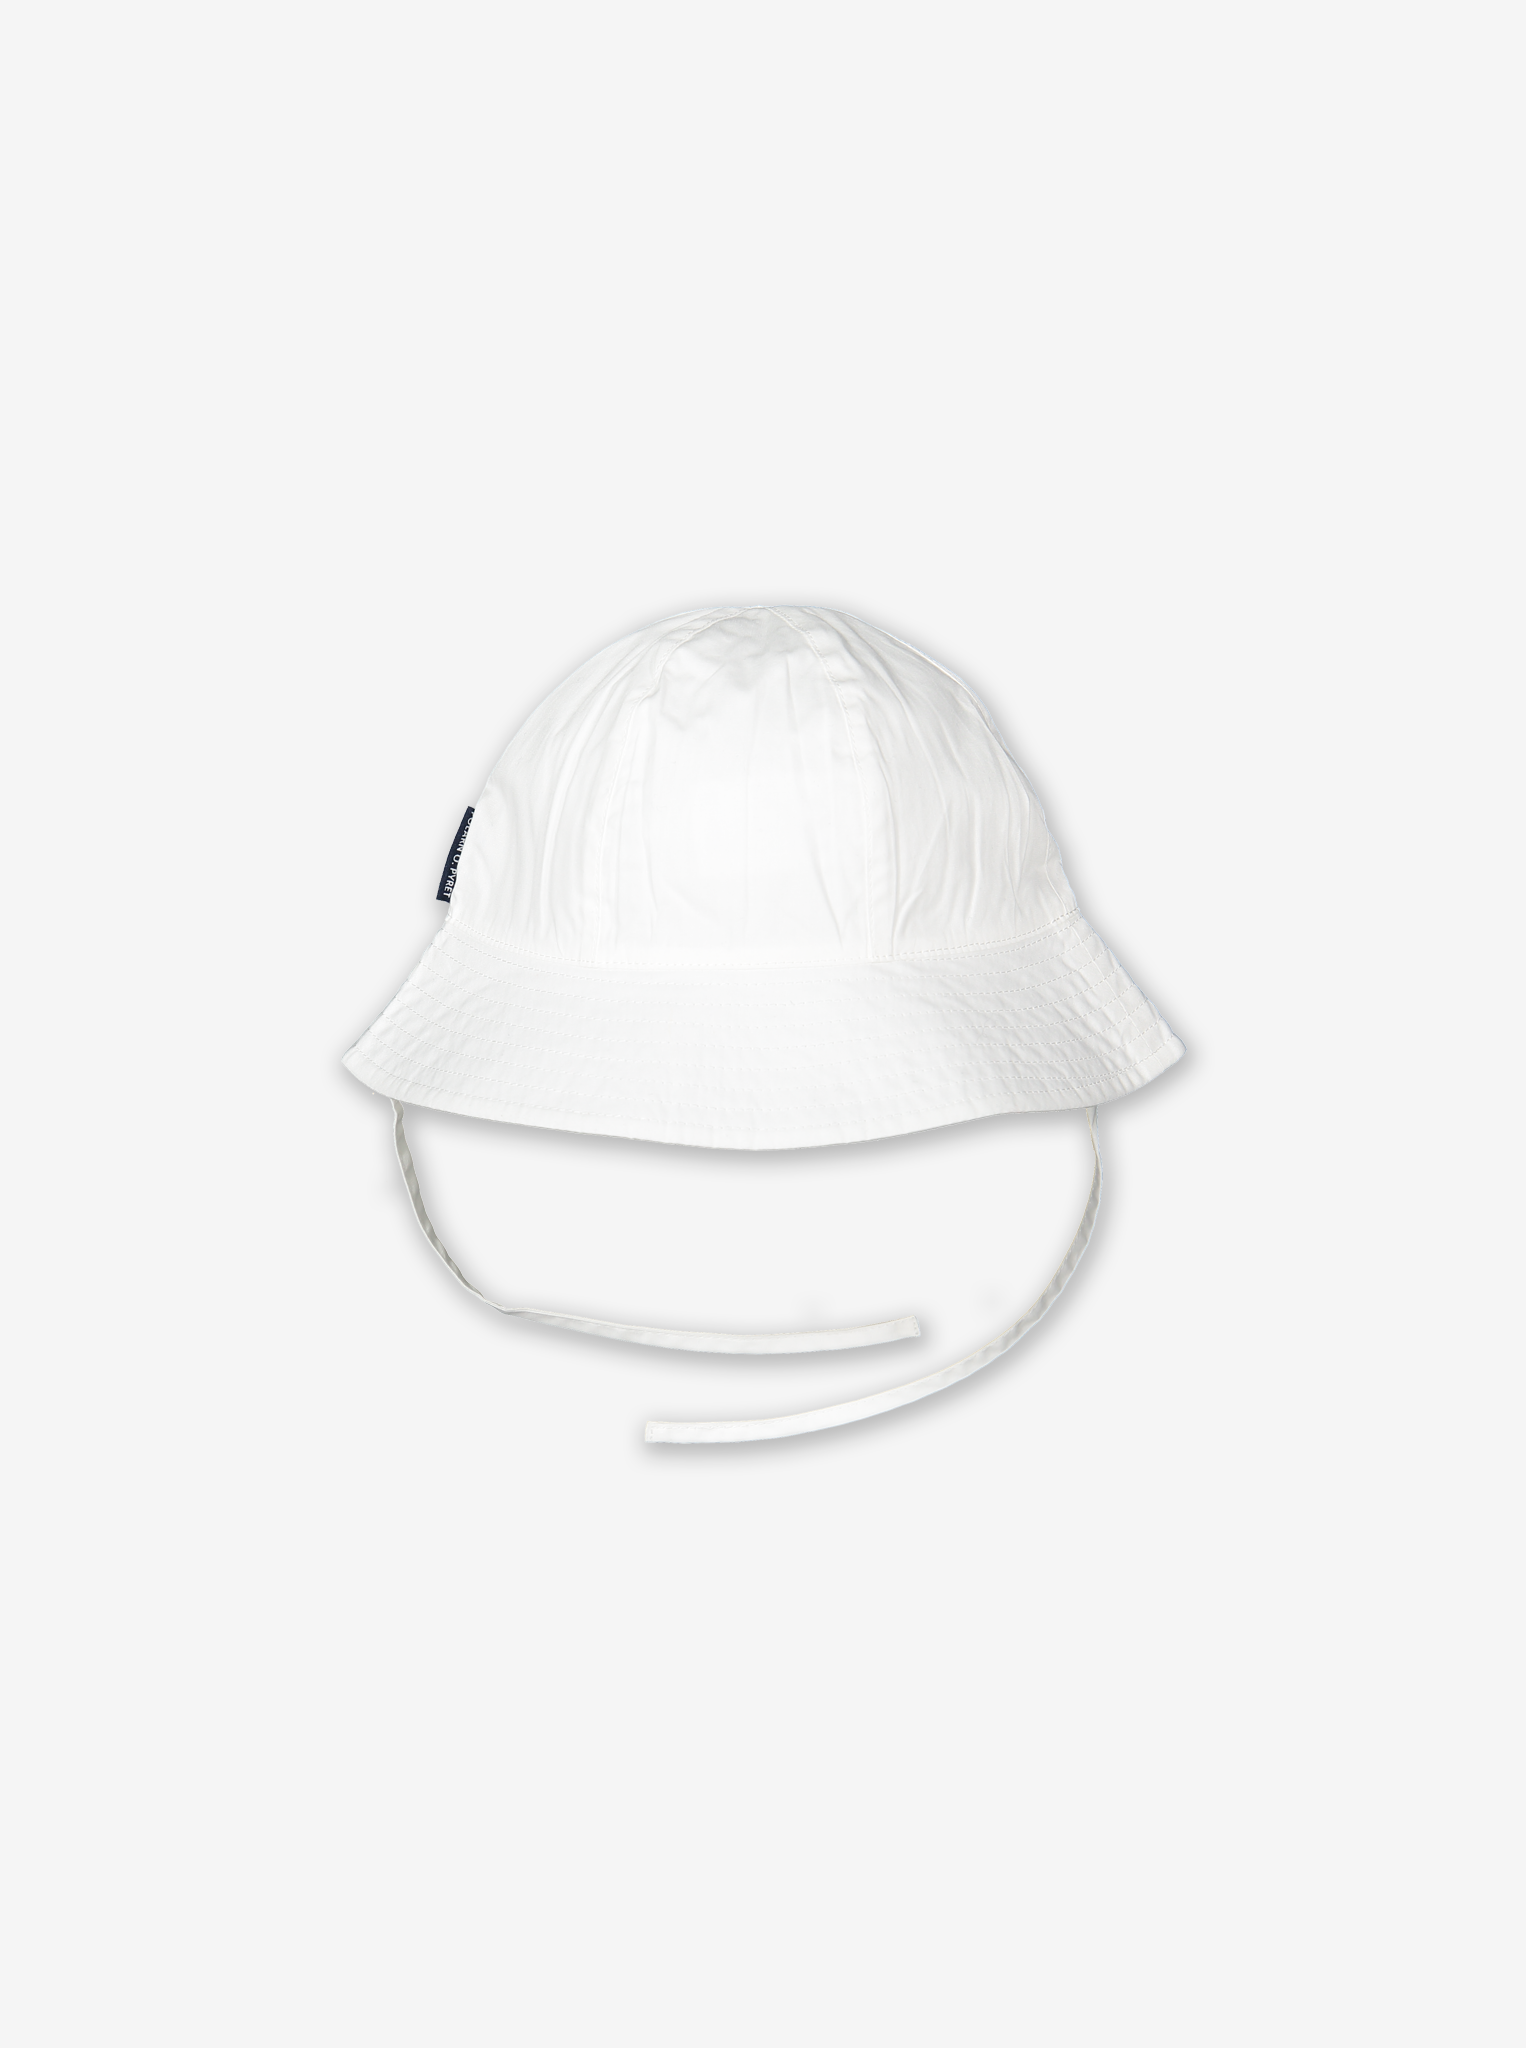 UV Kids Sun Hat-Unisex-1m-6y-White